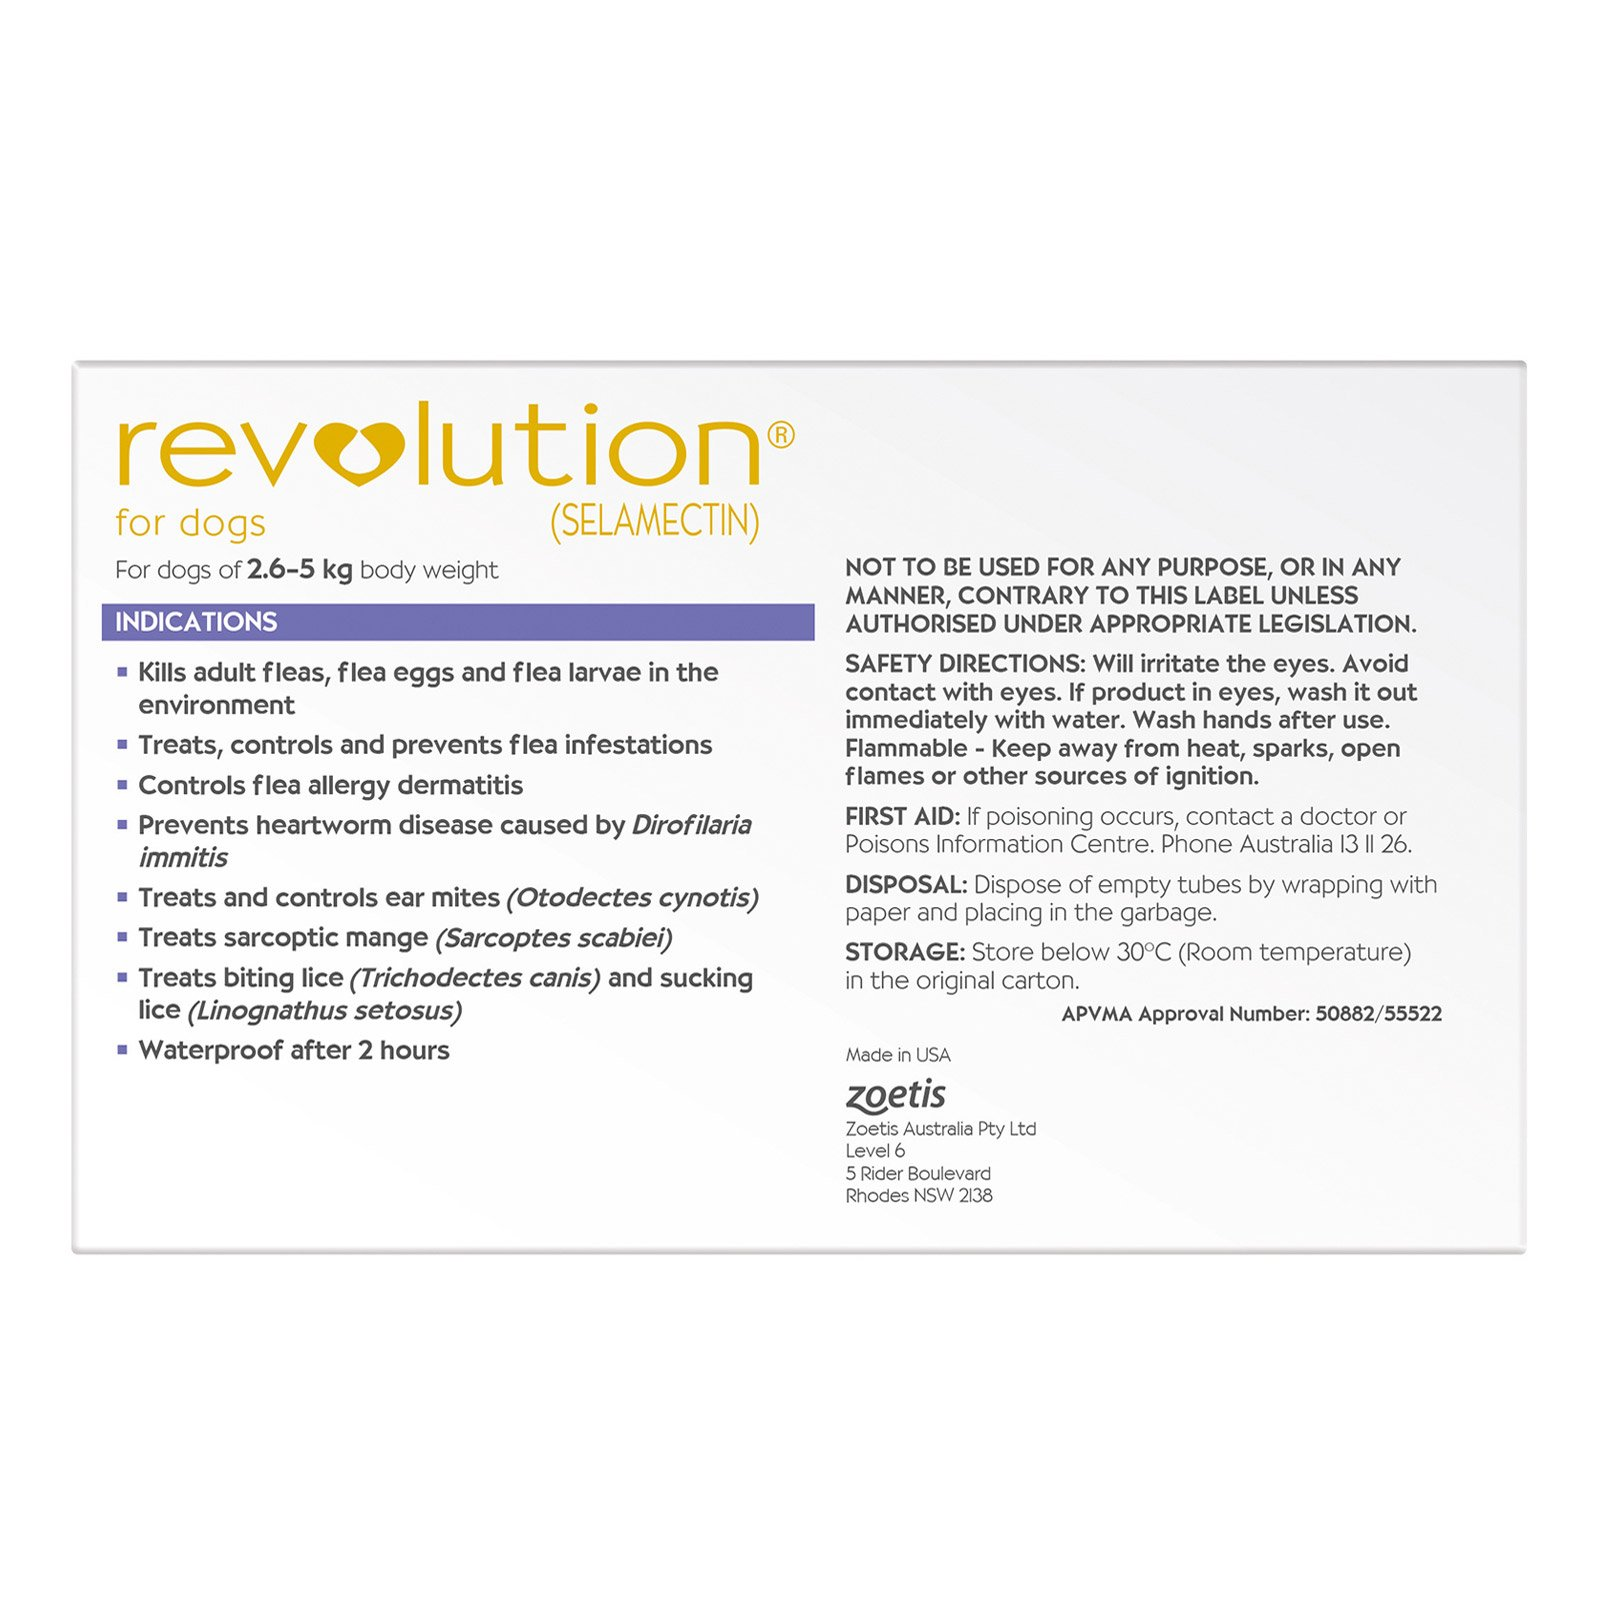 Revolution-canex-For-Very-Small-Dogs-2-To-5Kg-(Purple)_01272021_224609-back.jpg